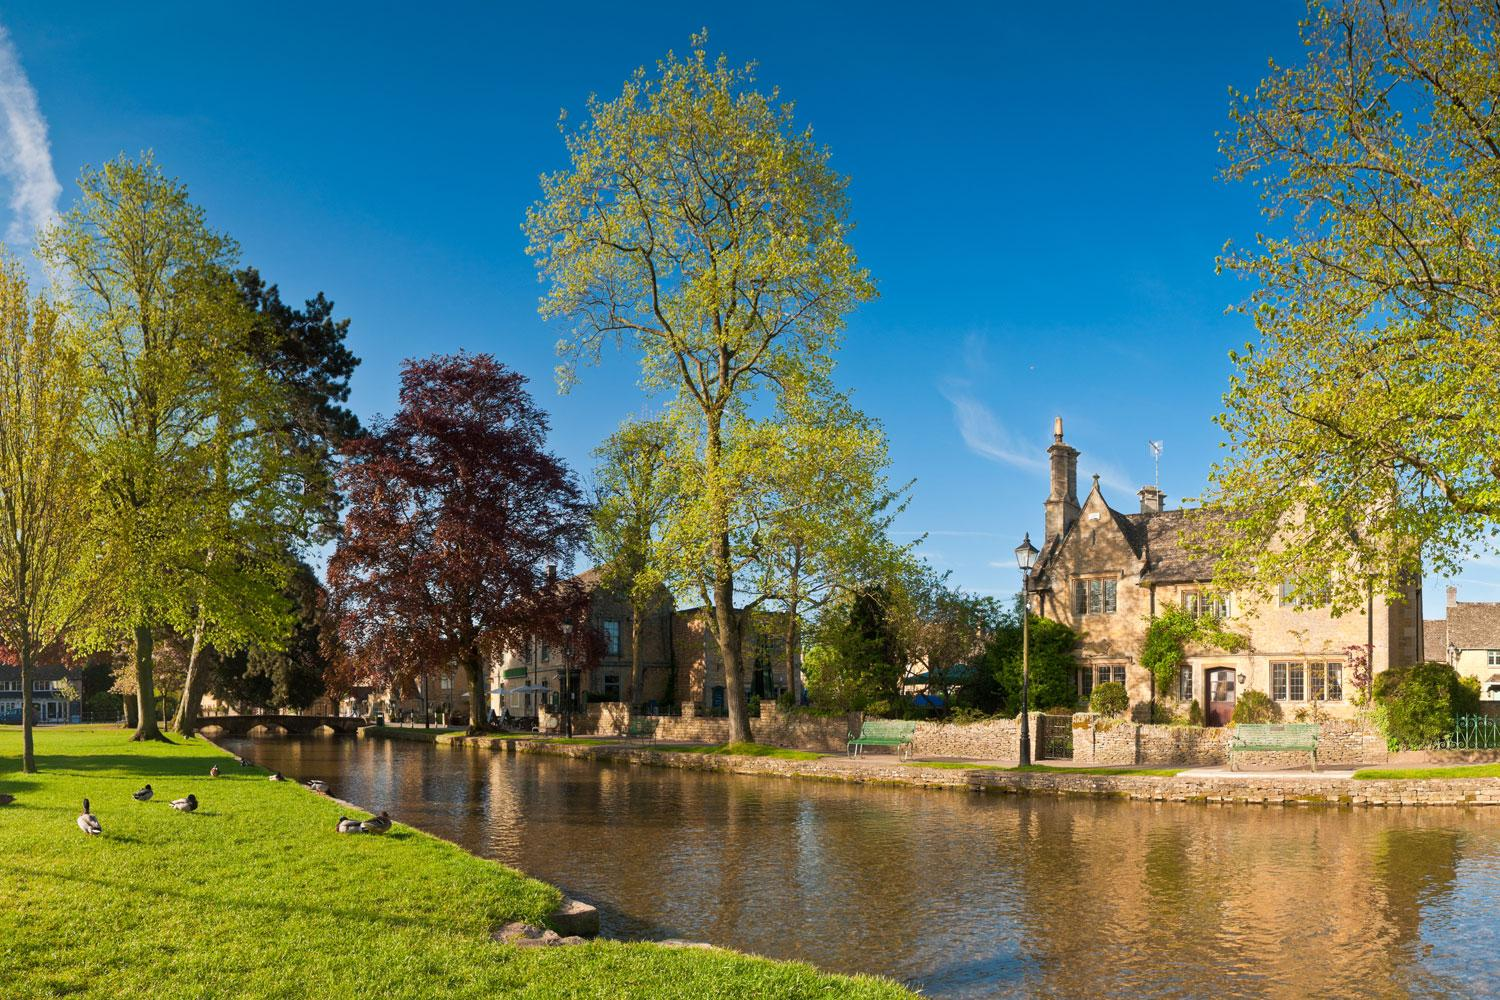 Bourton-on-the-Water on the Cotswold Trail